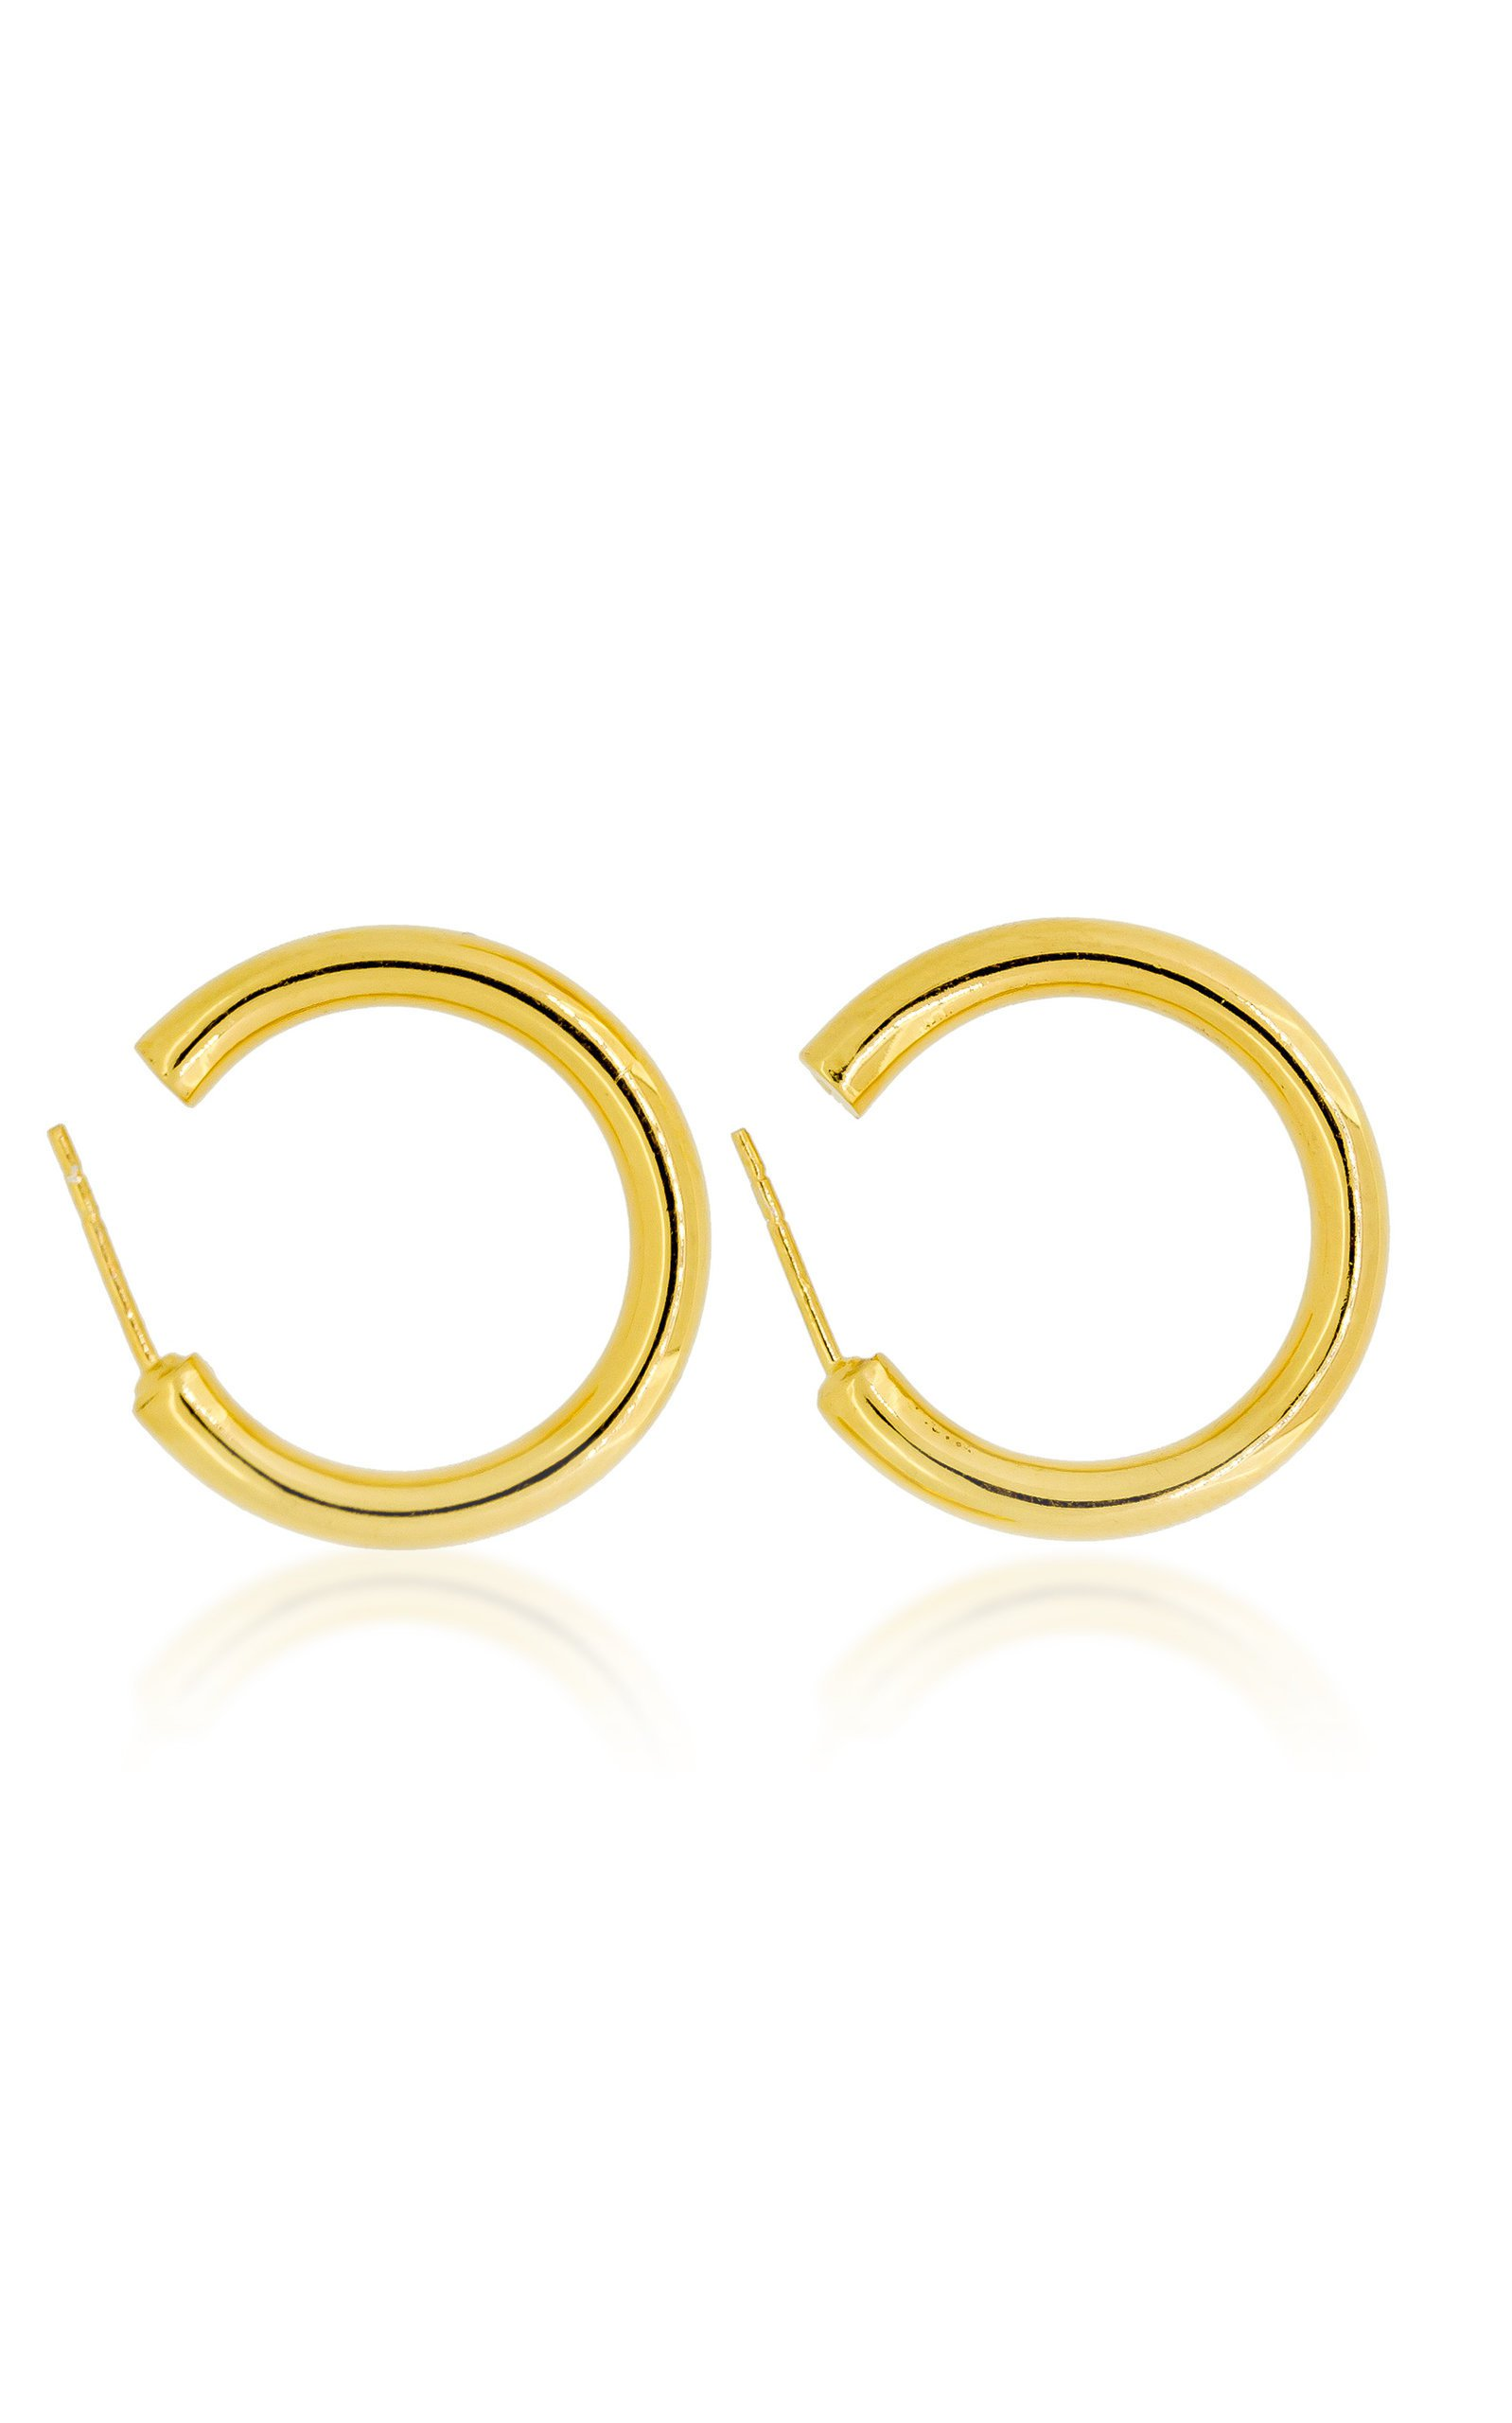 Holly Ryan Mini Tube Hoop Earrings